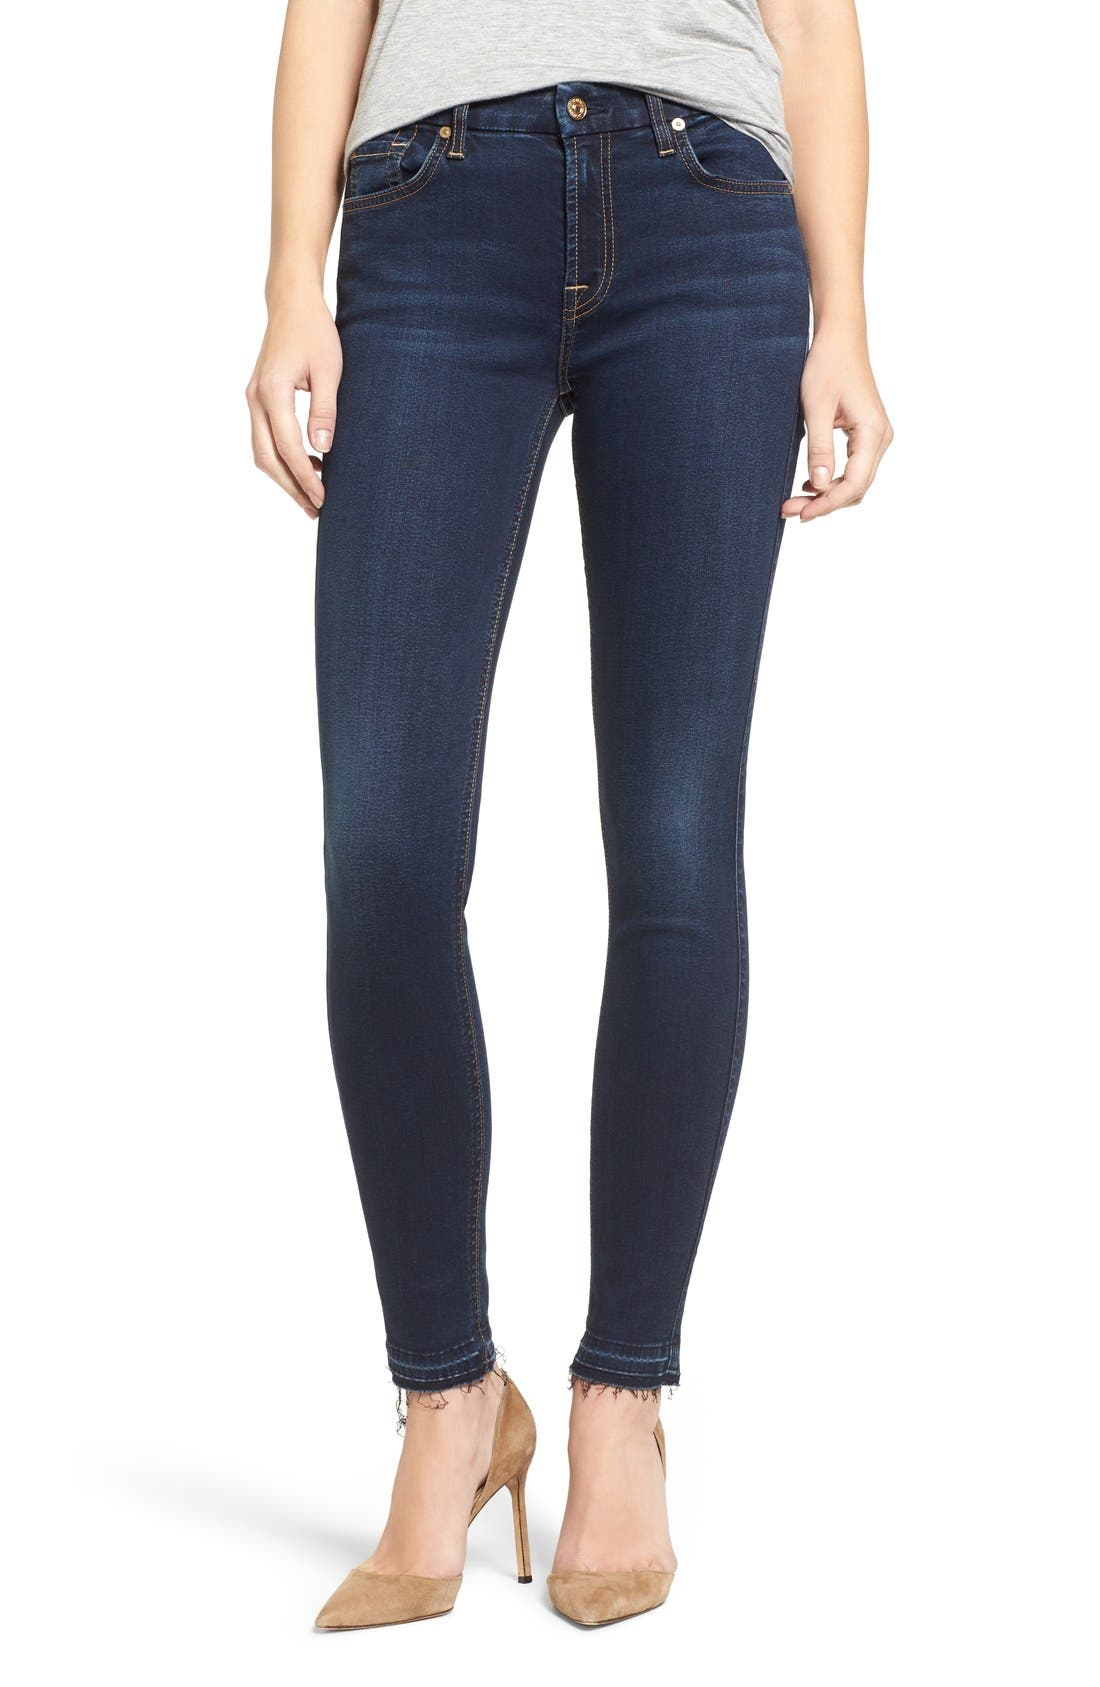 b(air) Ankle Skinny Jeans,                             Alternate thumbnail 6, color,                             400